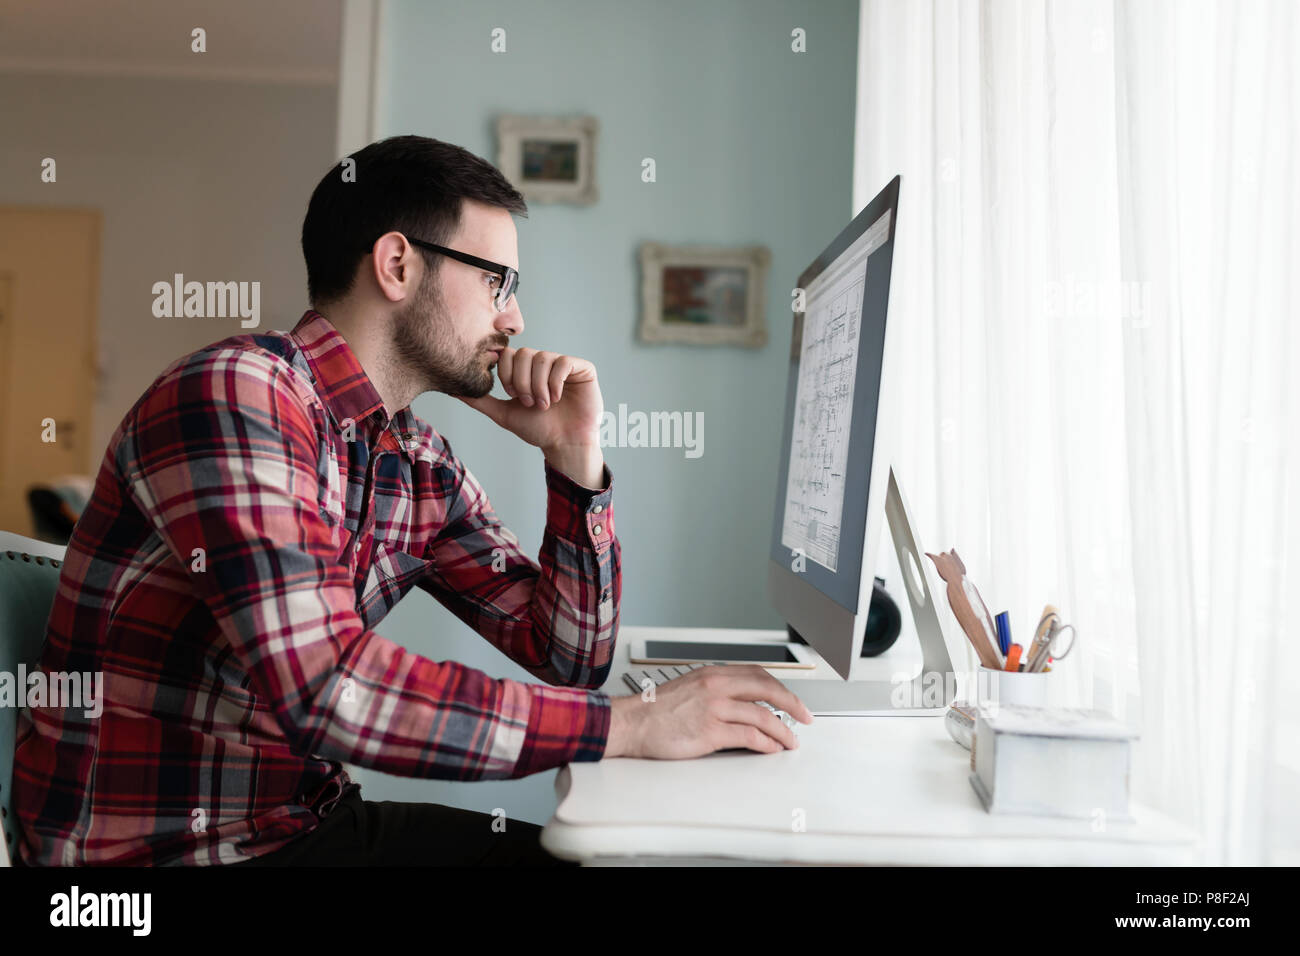 Young designer working on project from home - Stock Image